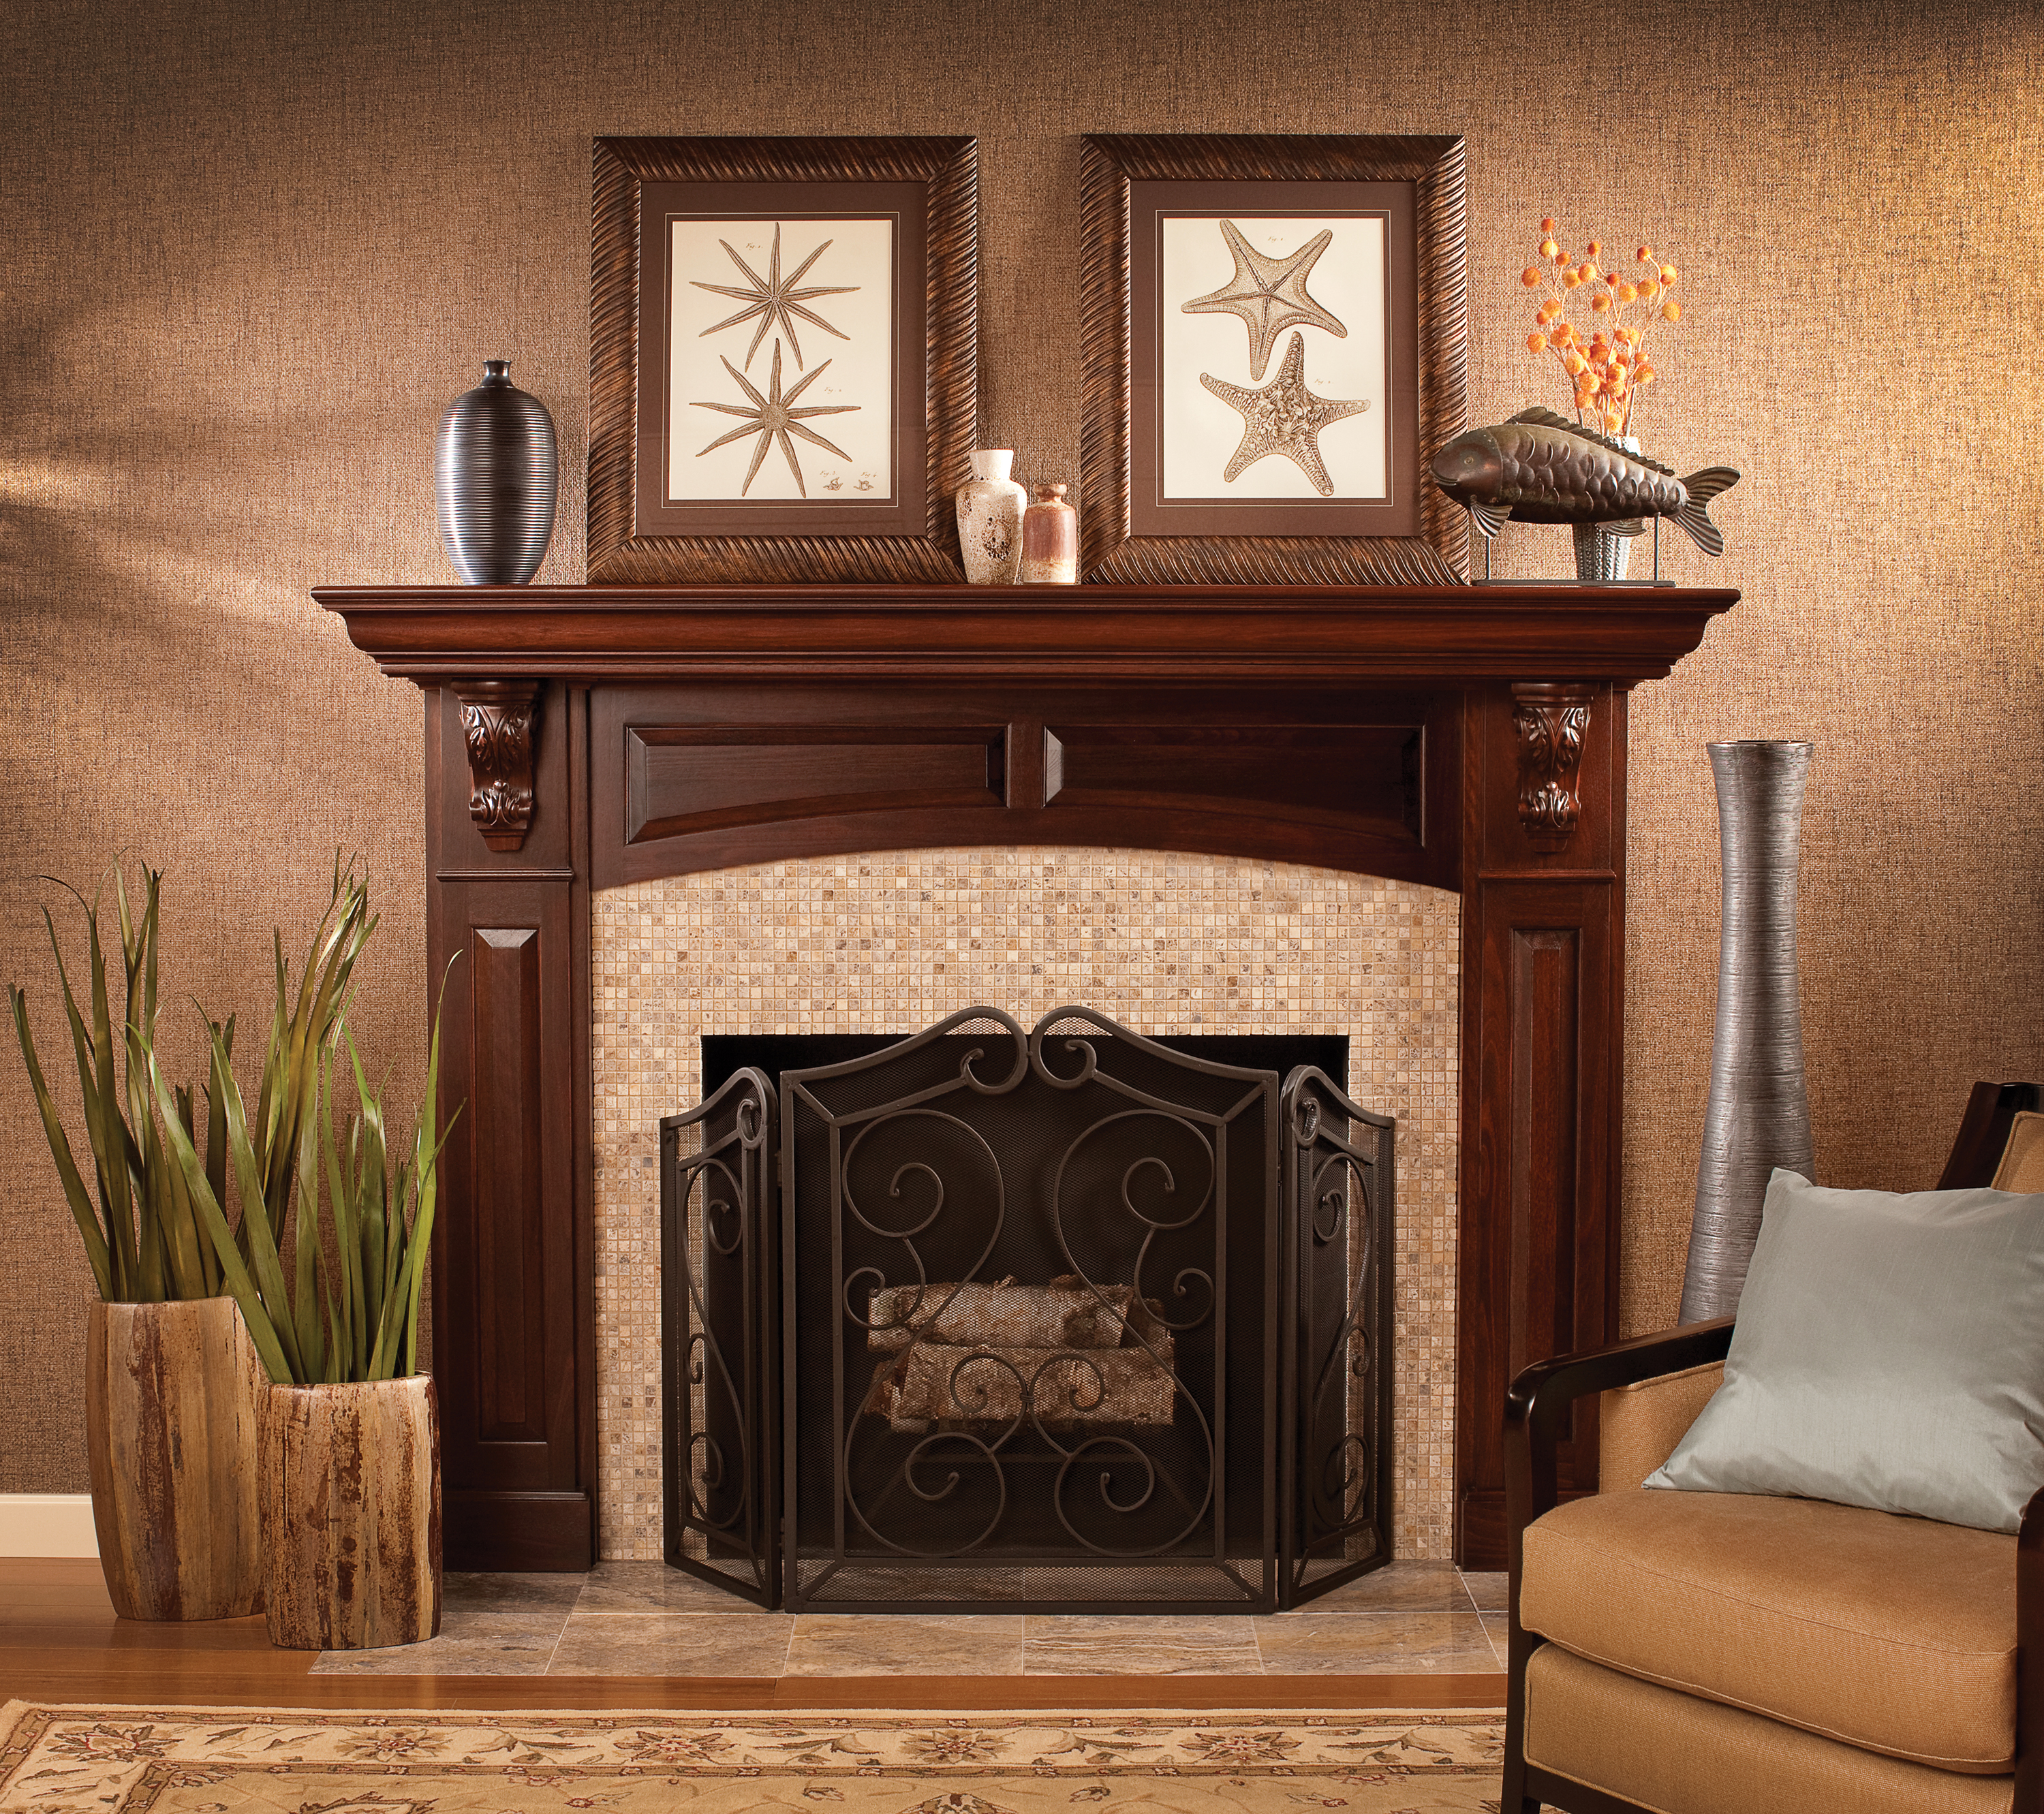 Cardinal kitchens baths fireplace mantels for Wood fireplace surround designs